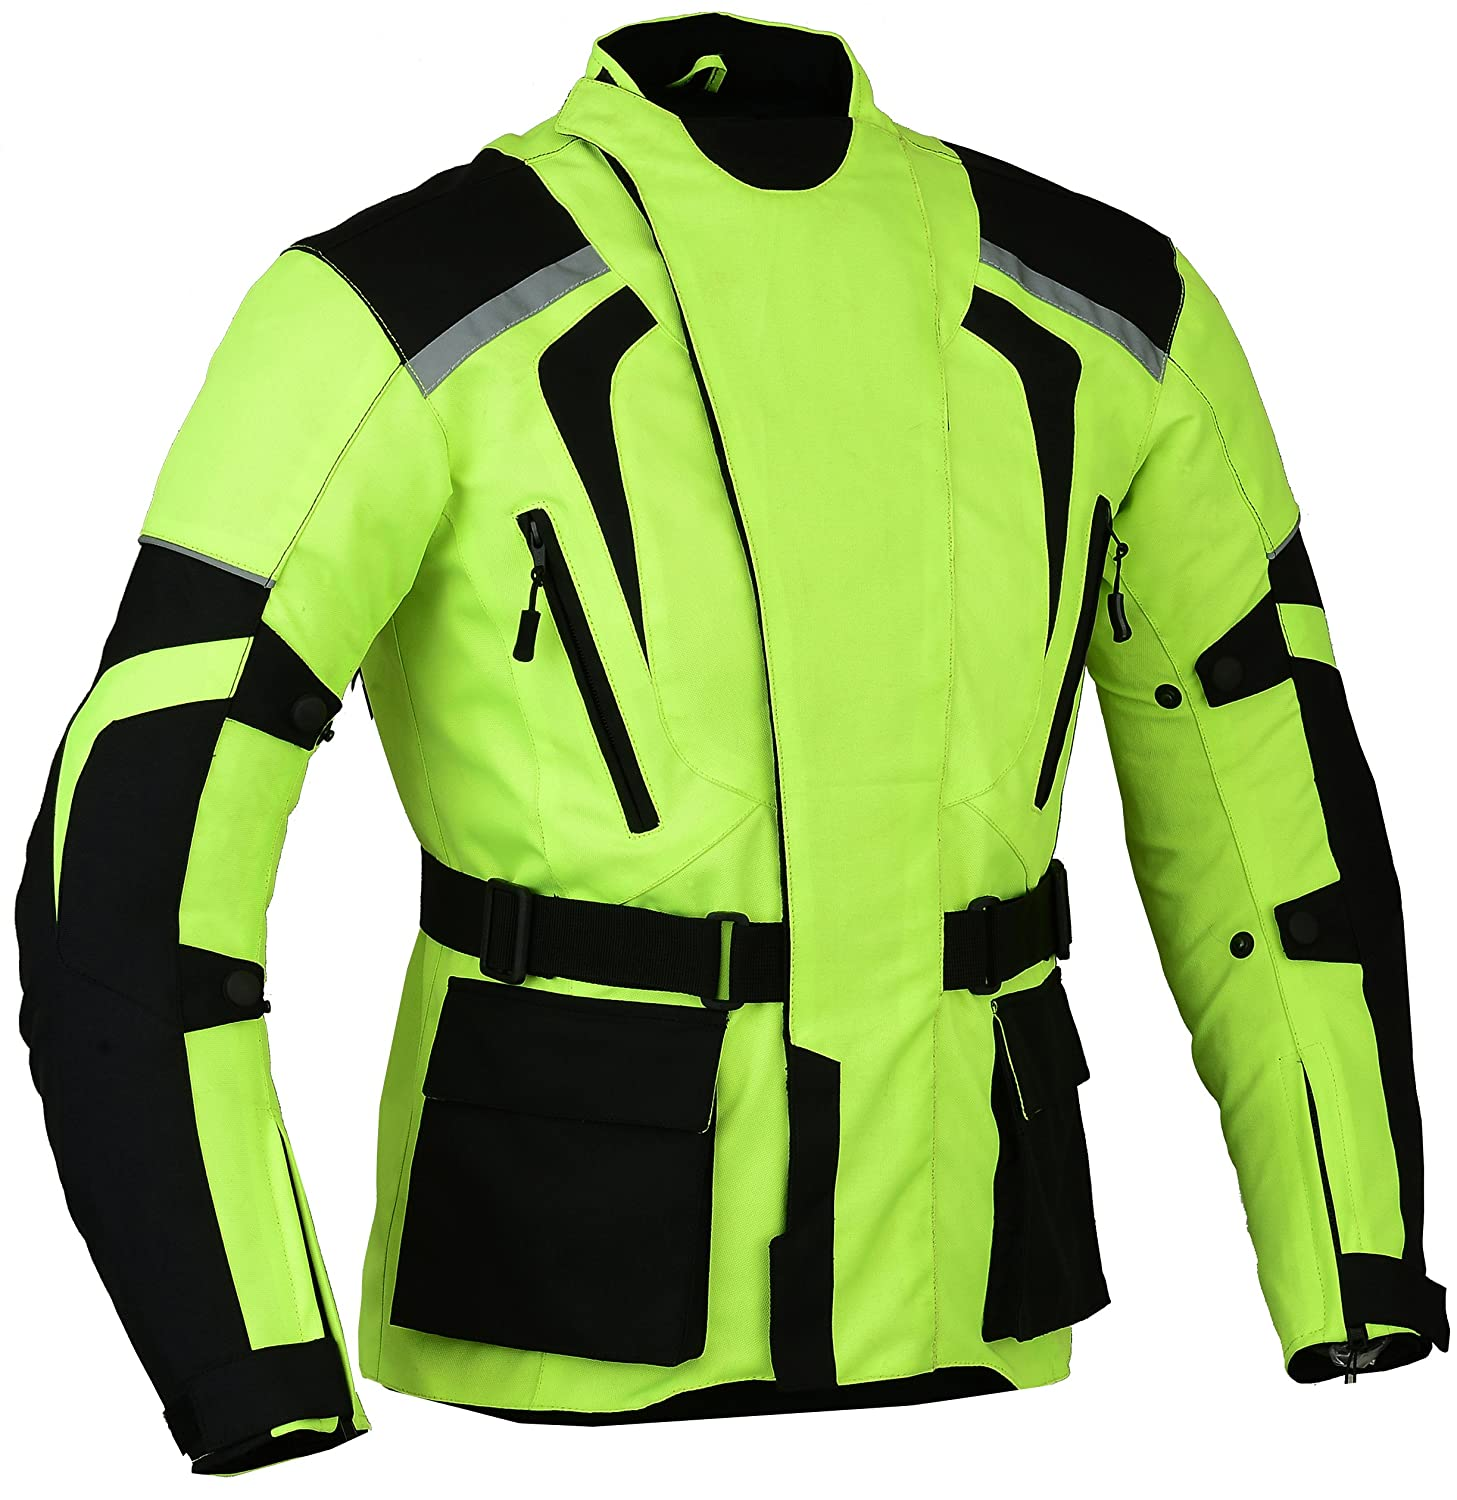 Amazon.com: Green Hivis Motorcycle Protection Jacket Outer ...